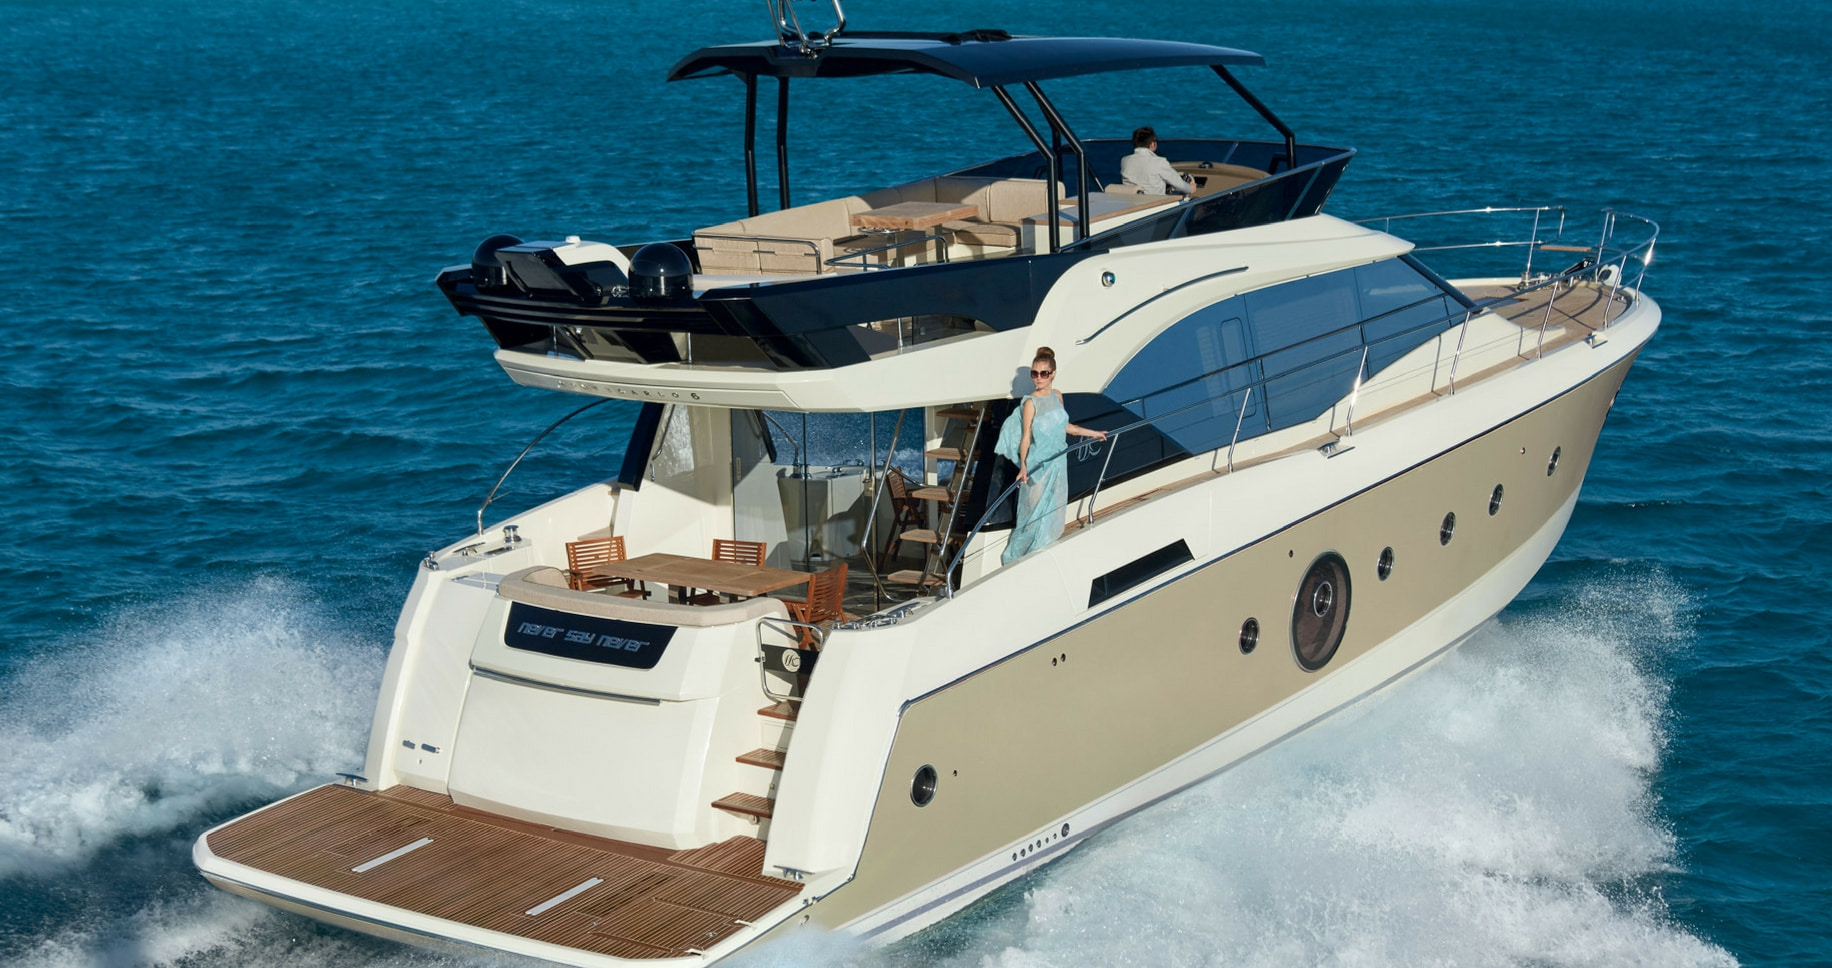 Flagstaff Marine Exclusive Importers of Monte Carlo Luxury Motor Yachts